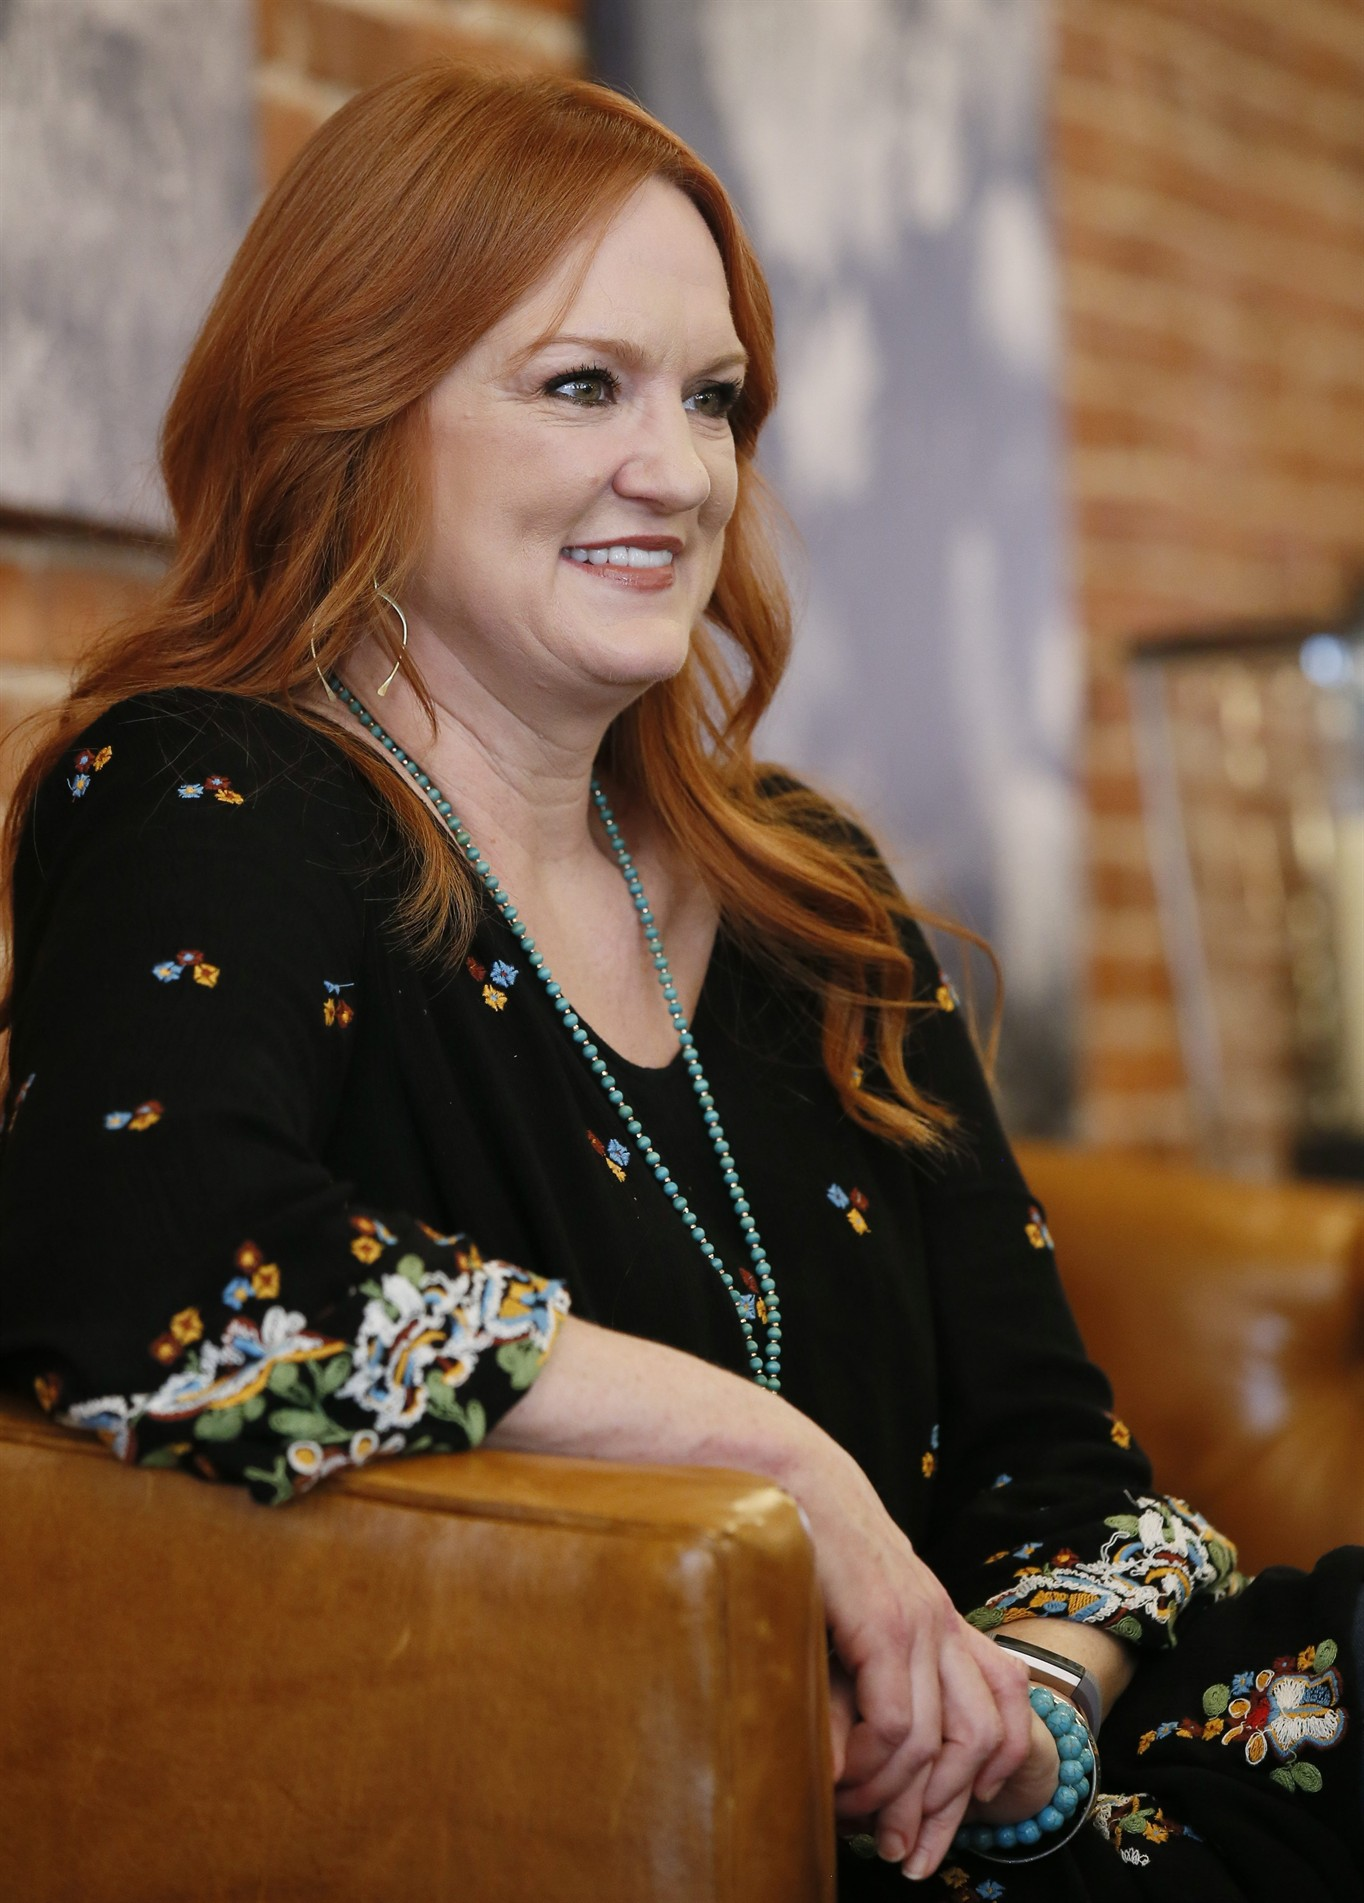 Oklahoma 39 s 39 pioneer woman 39 builds media empire on the for Where to buy pioneer woman magazine